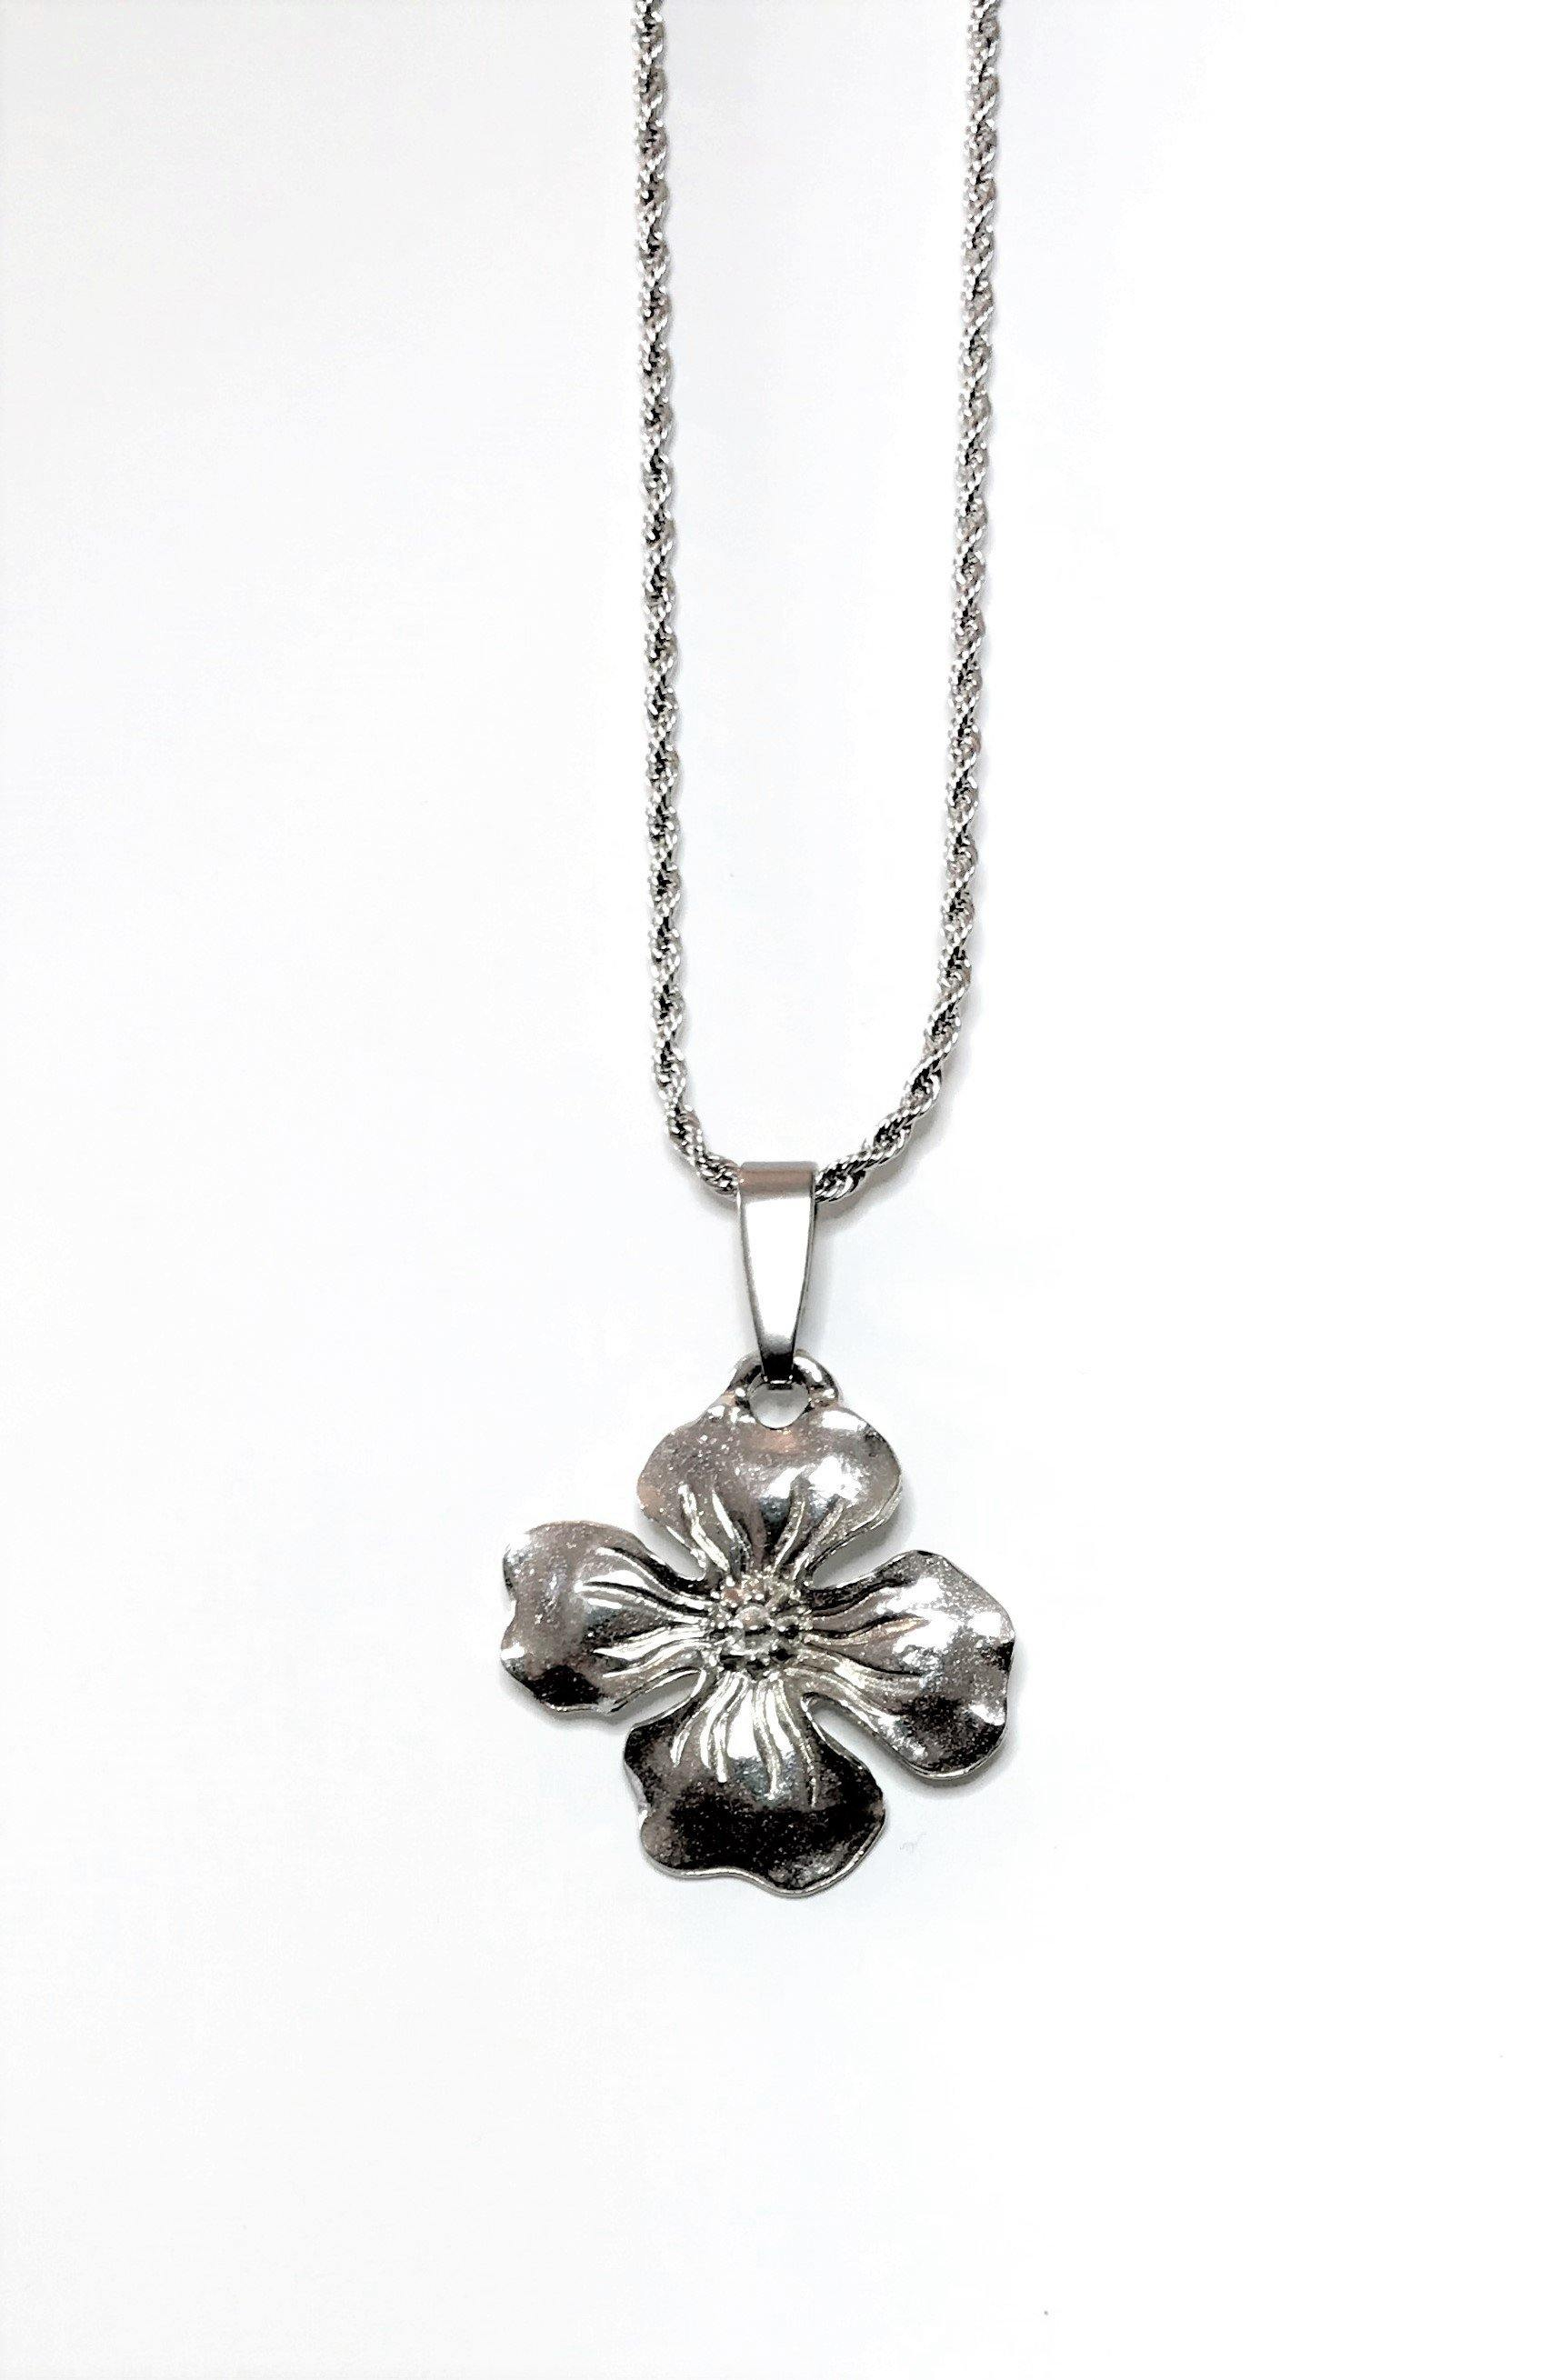 Dogwood Flower Religious Pendant Charm Necklace Jewelry Accessory Pewter Handmade - House of Morgan Pewter